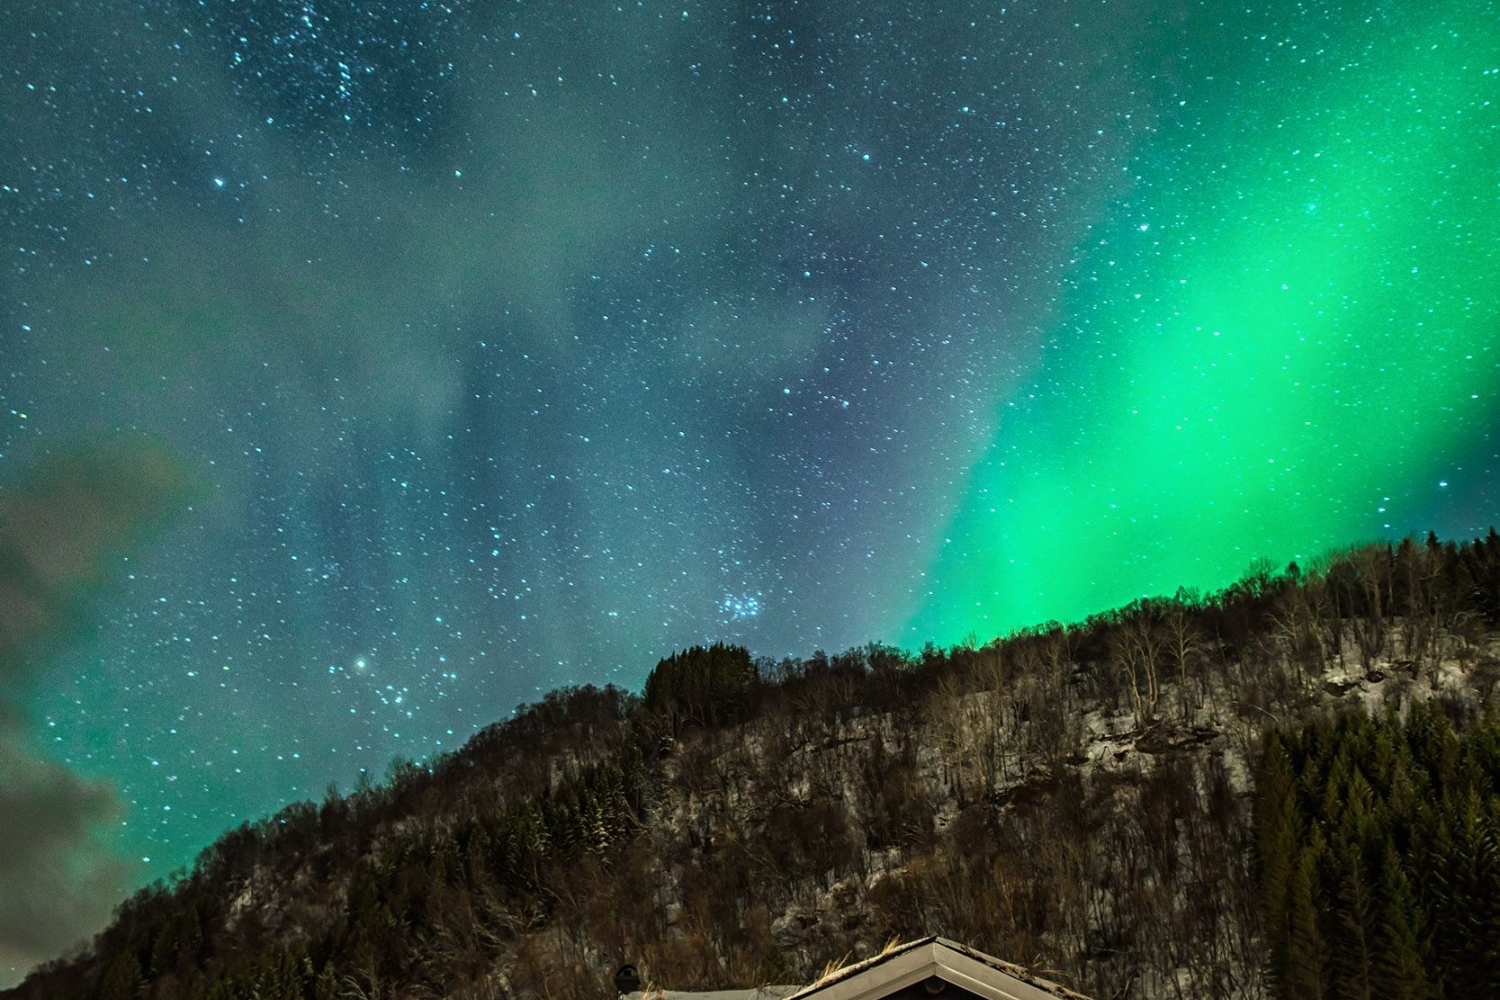 Northern Lights above a house